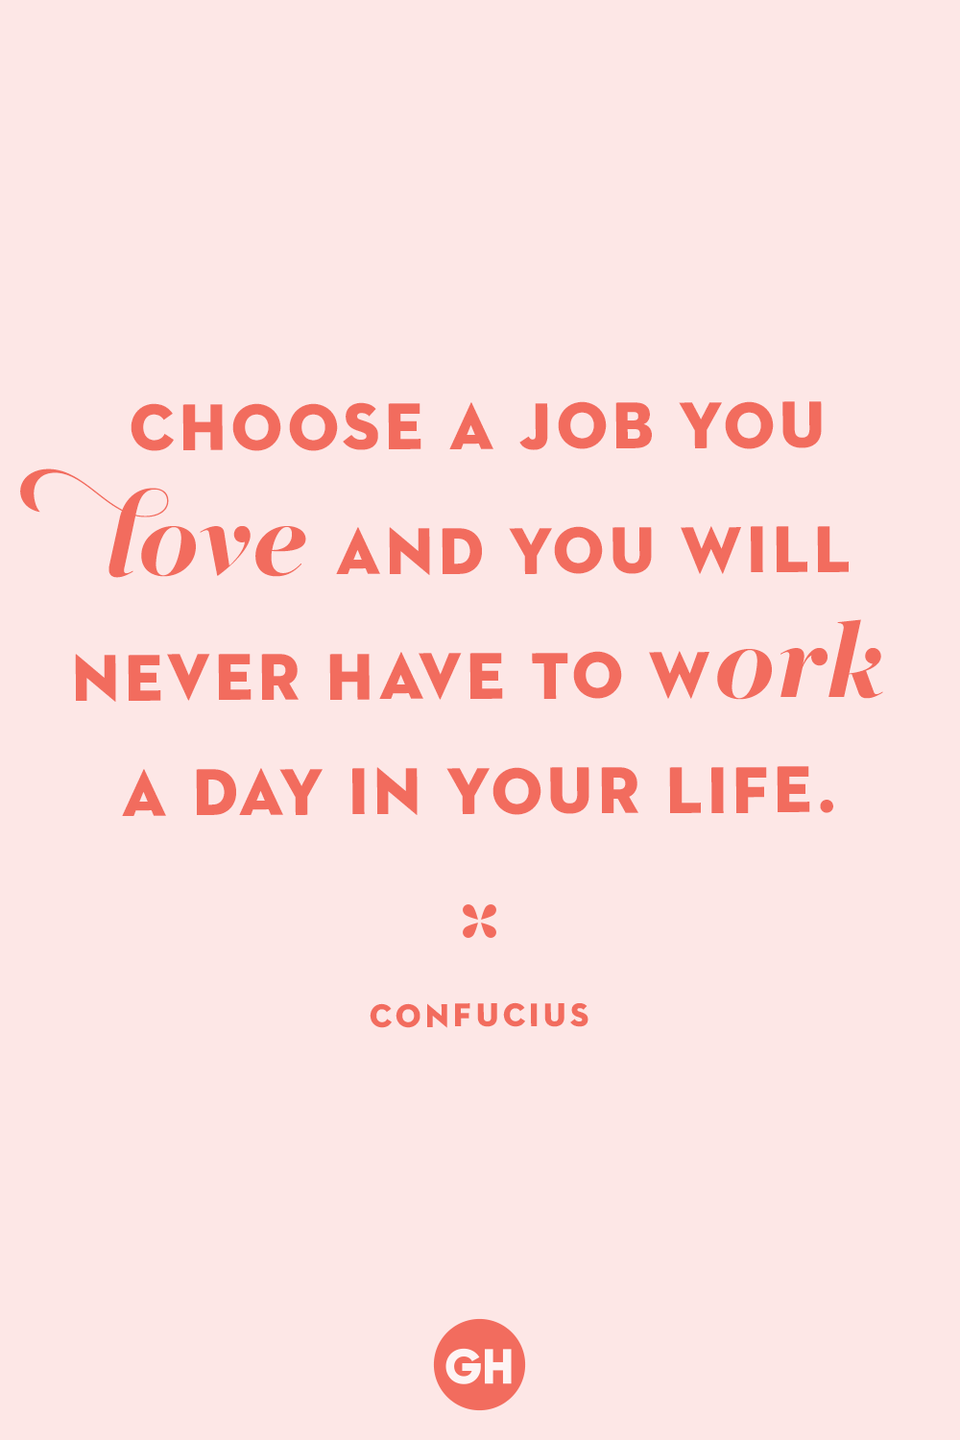 <p>Choose a job you love and you will never have to work a day in your life.</p>